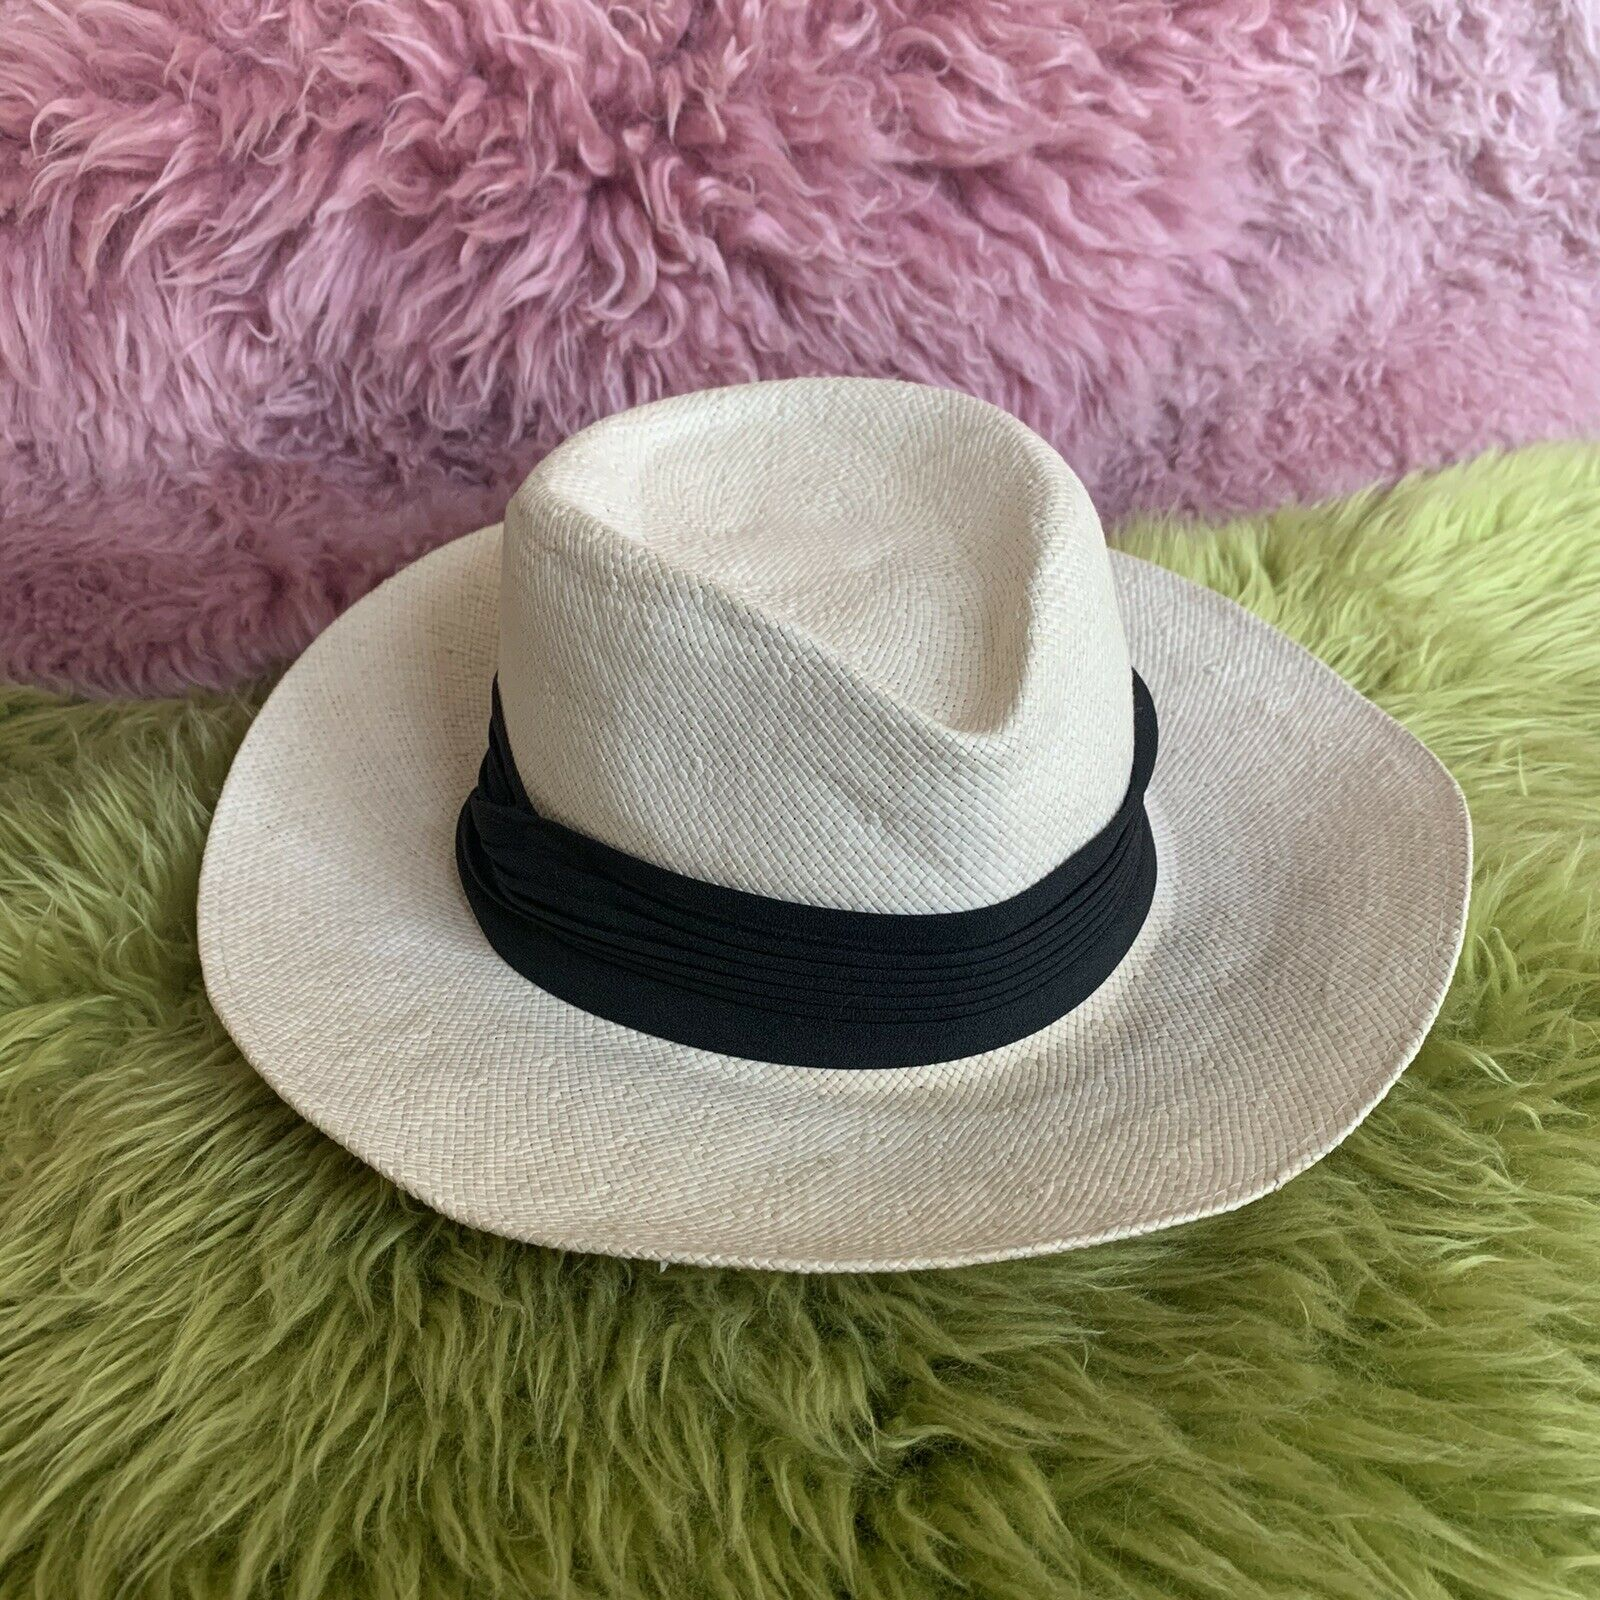 Vintage 70s Does 40s Women's Smooth Criminal Whit… - image 2